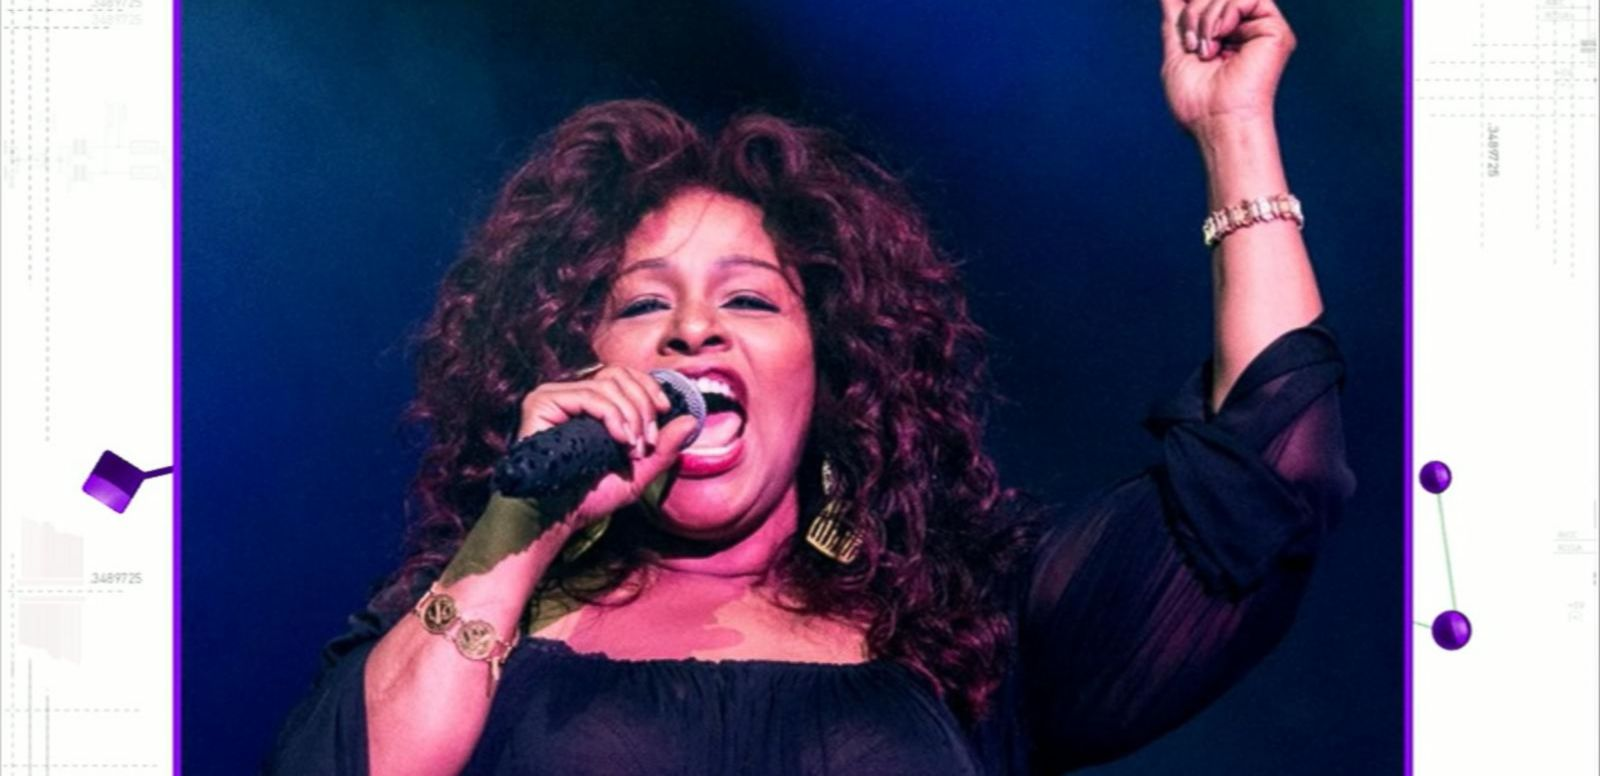 VIDEO: Superstar Chaka Khan Joins 'Dancing With the Stars' Season 21